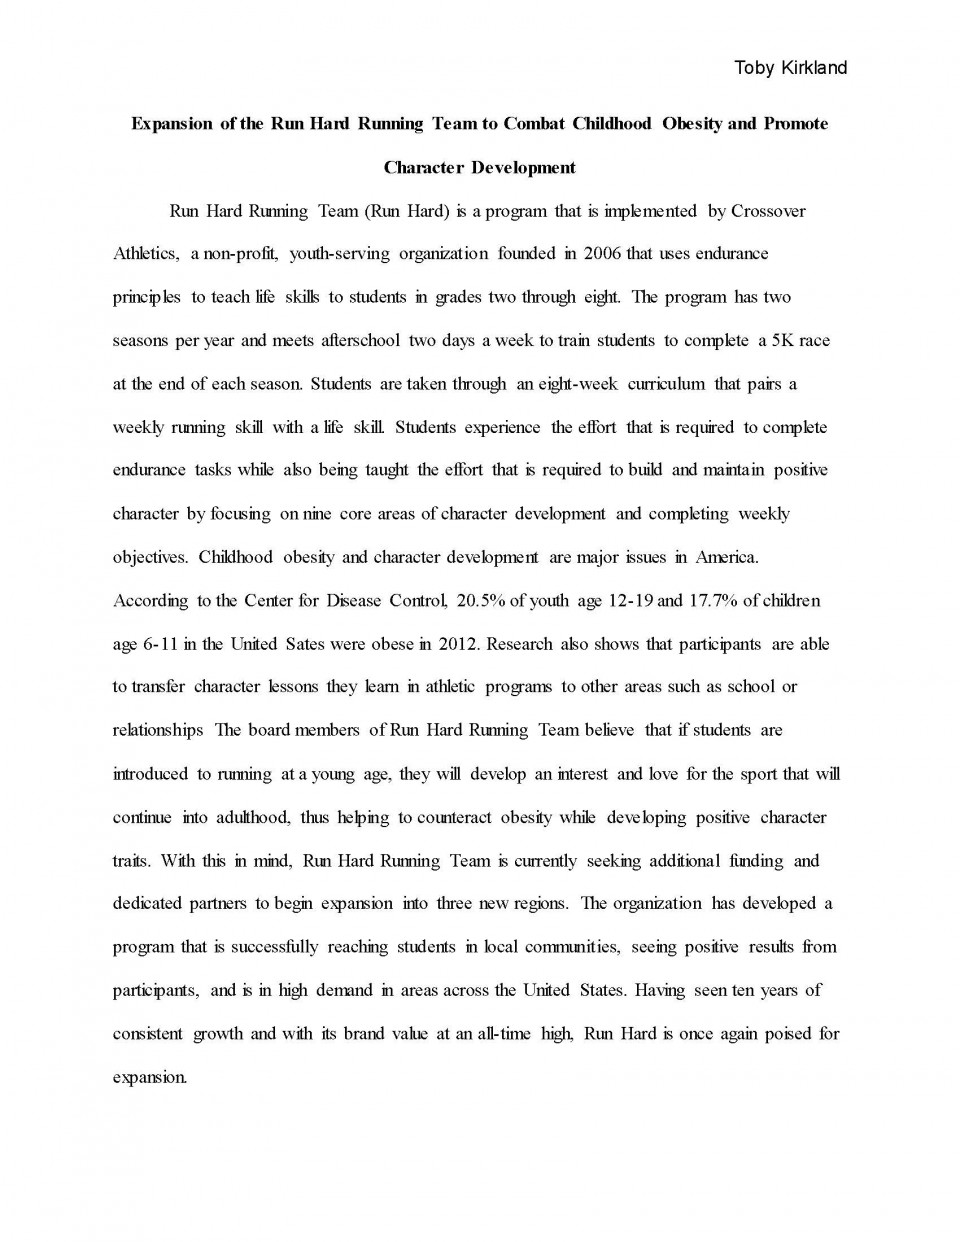 003 Childhood Obesity Research Paper Introduction Toby Kirkland Final Grant Proposal Page 01 Frightening 960